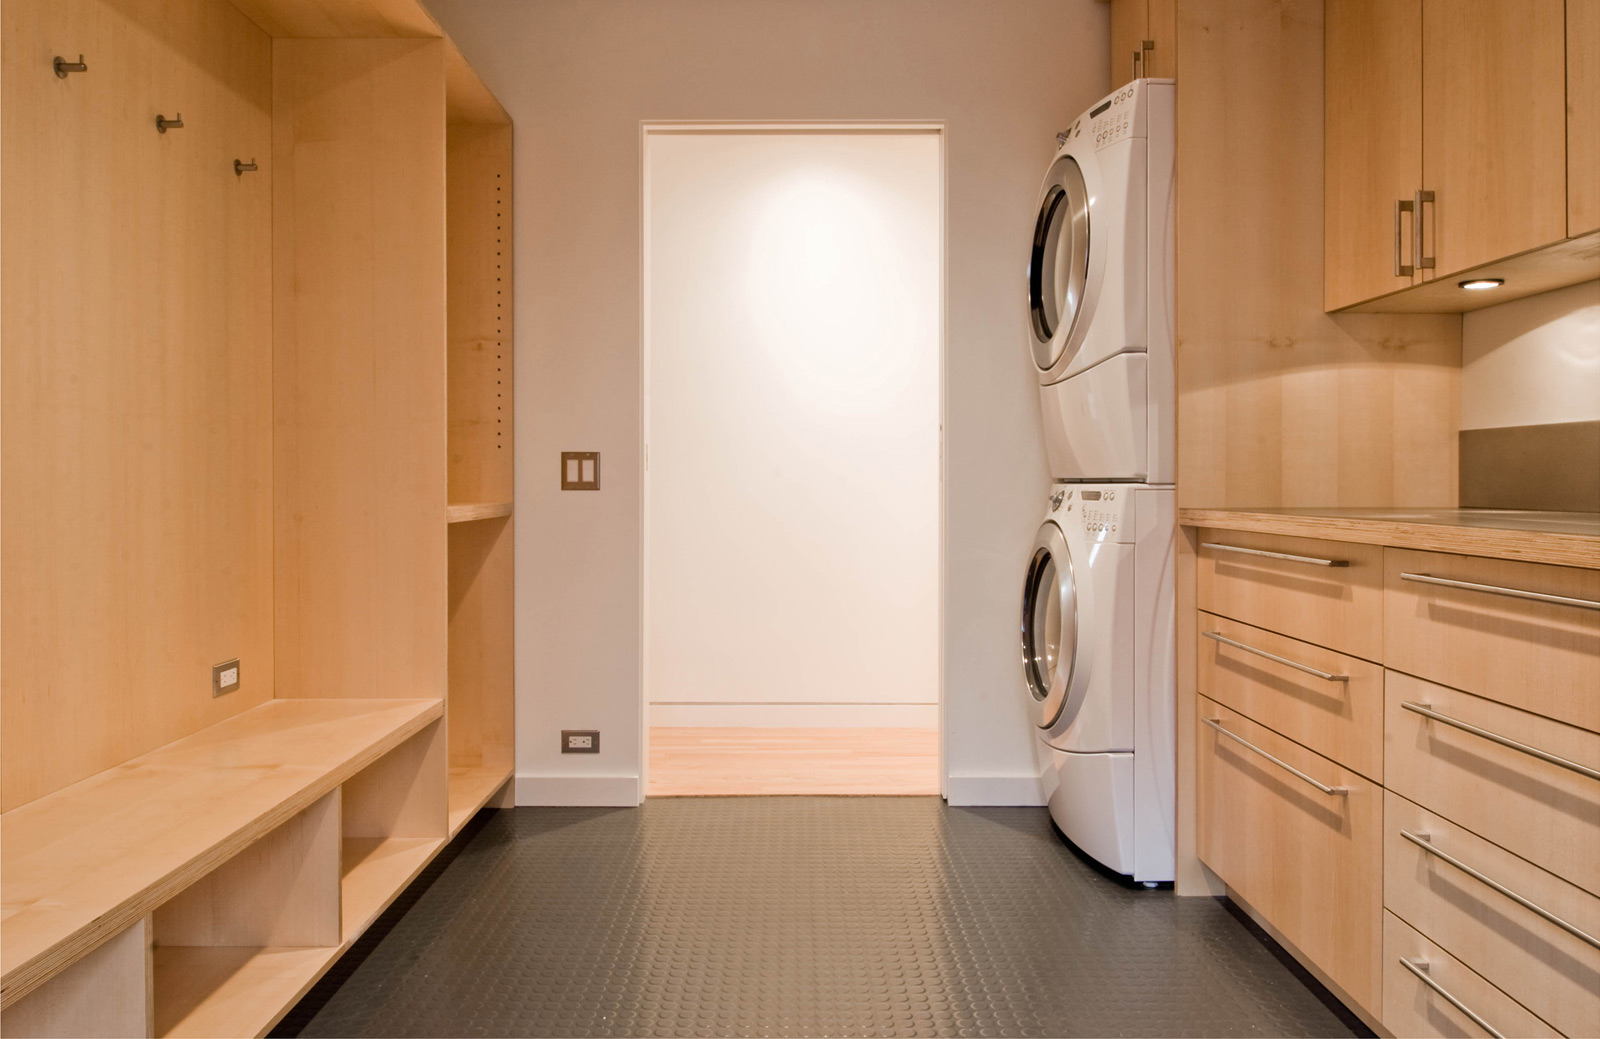 Mud laundry room design build blog for Mudroom layout